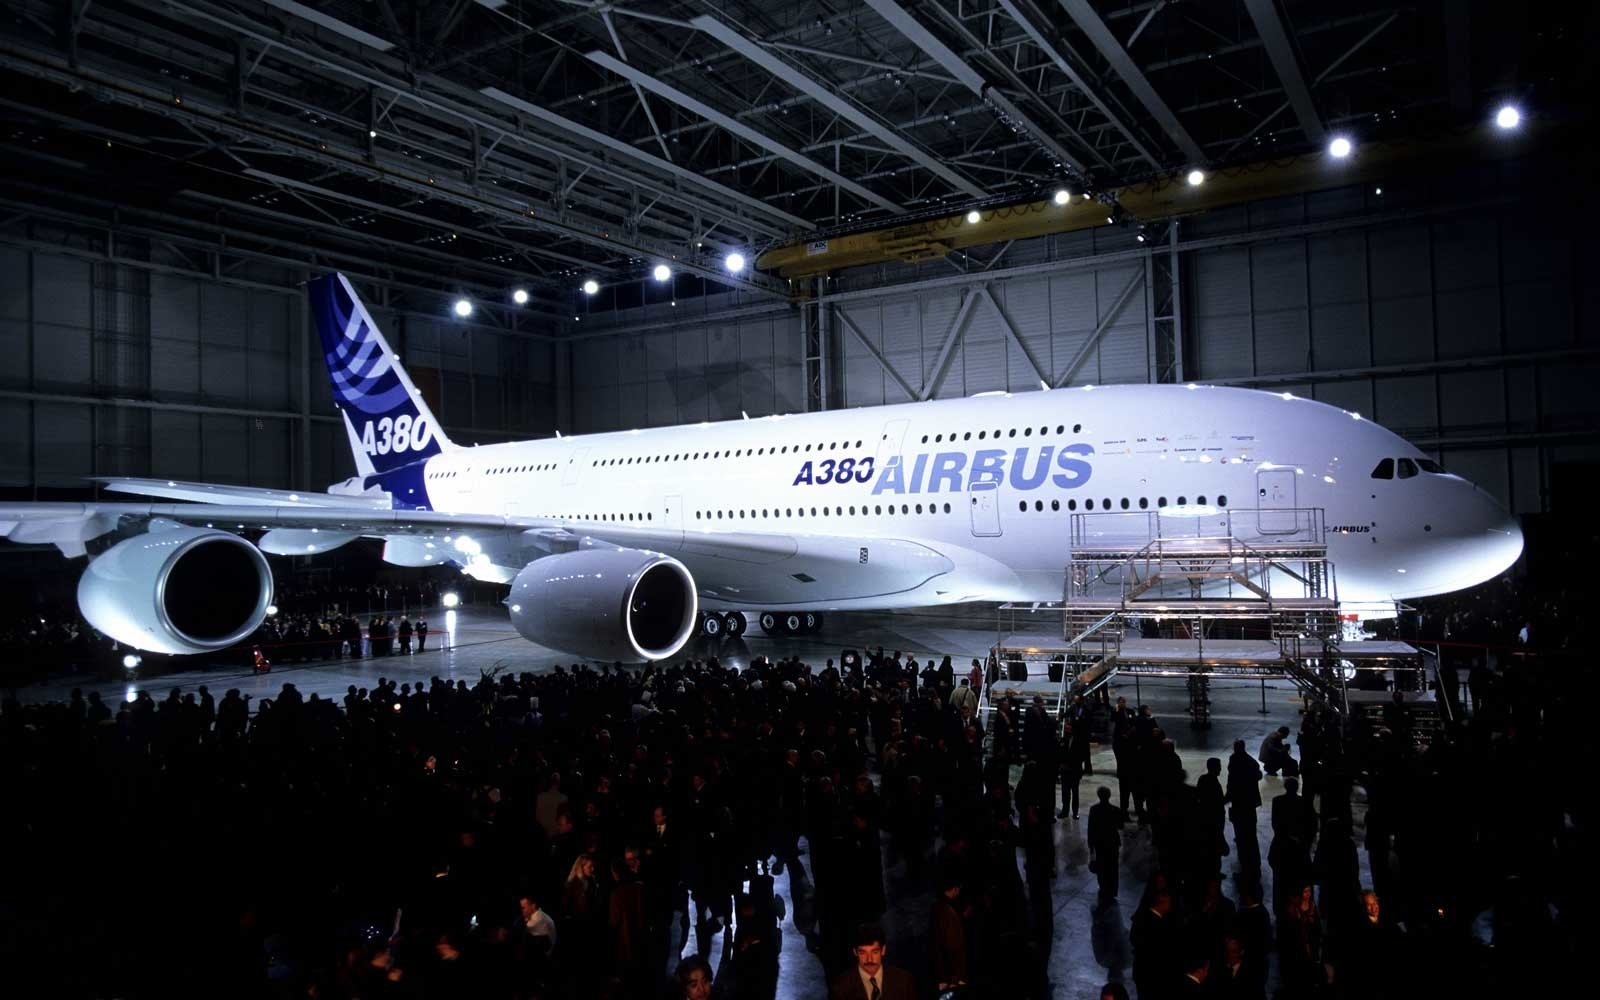 Airbus ending manufacturing of A380, world's largest airliner